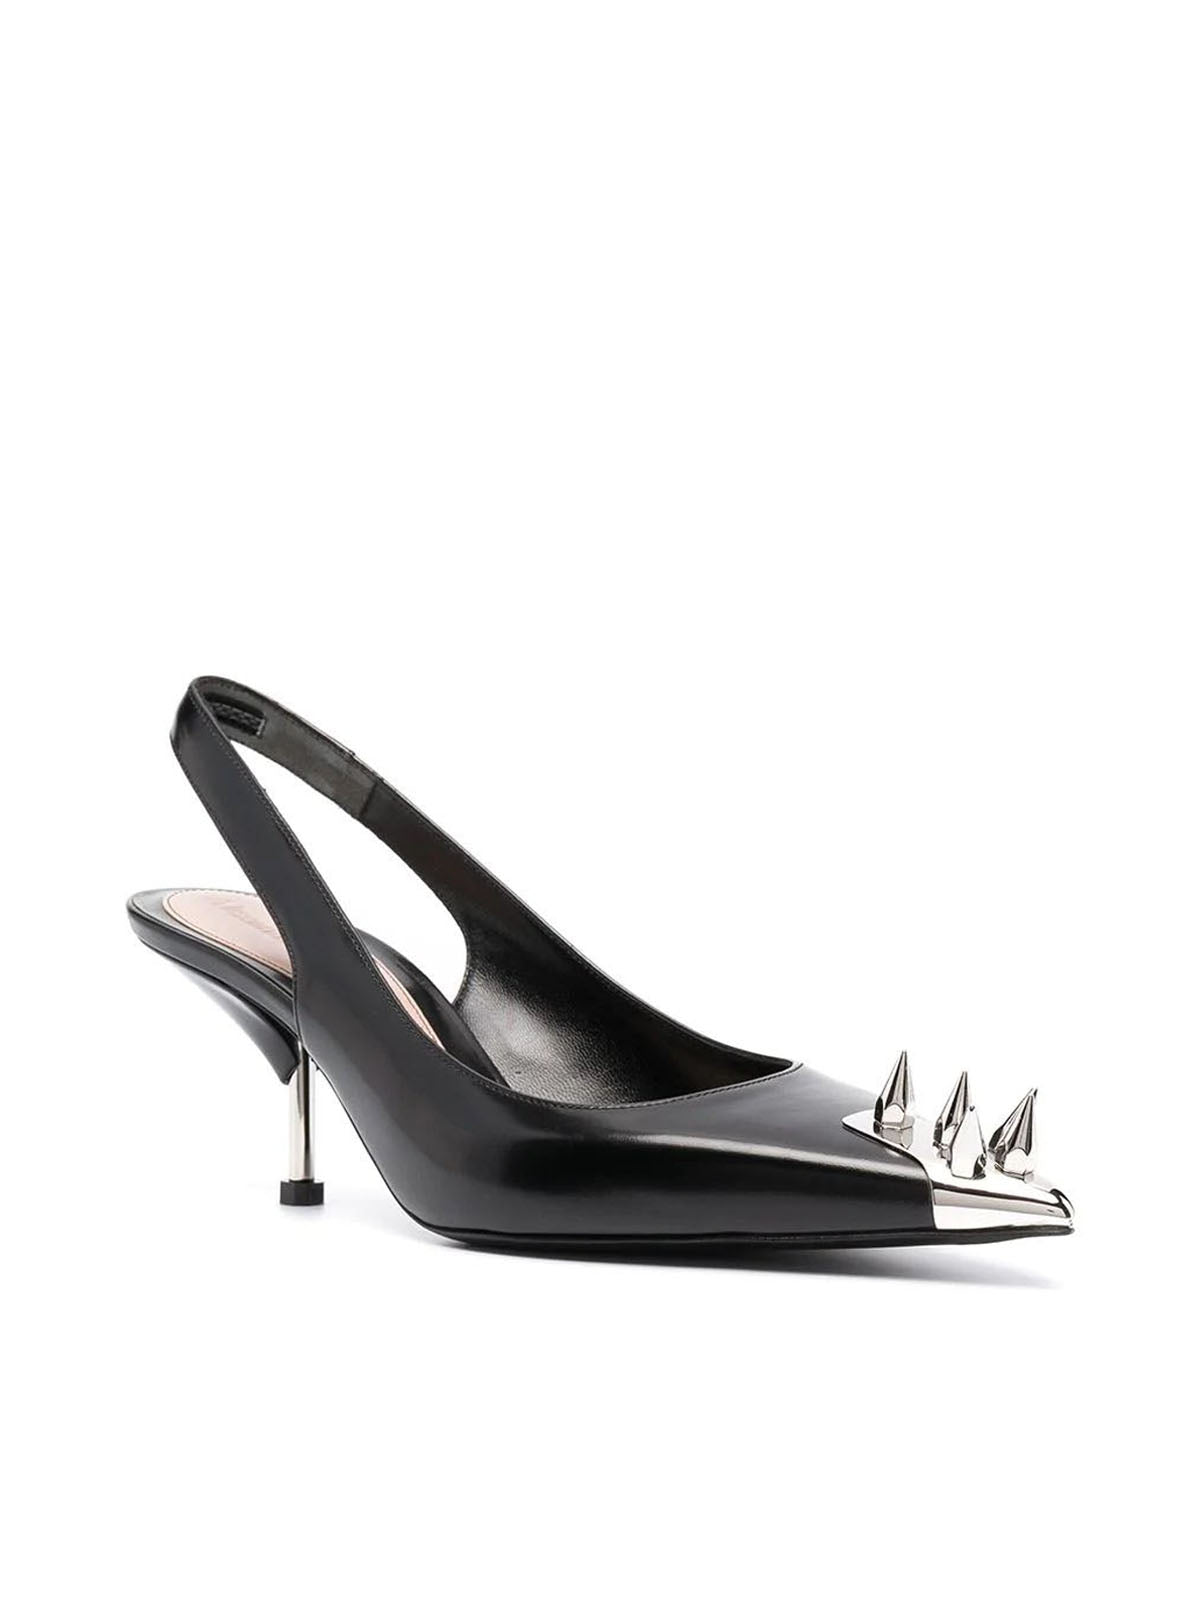 Punk Stud slingback pumps